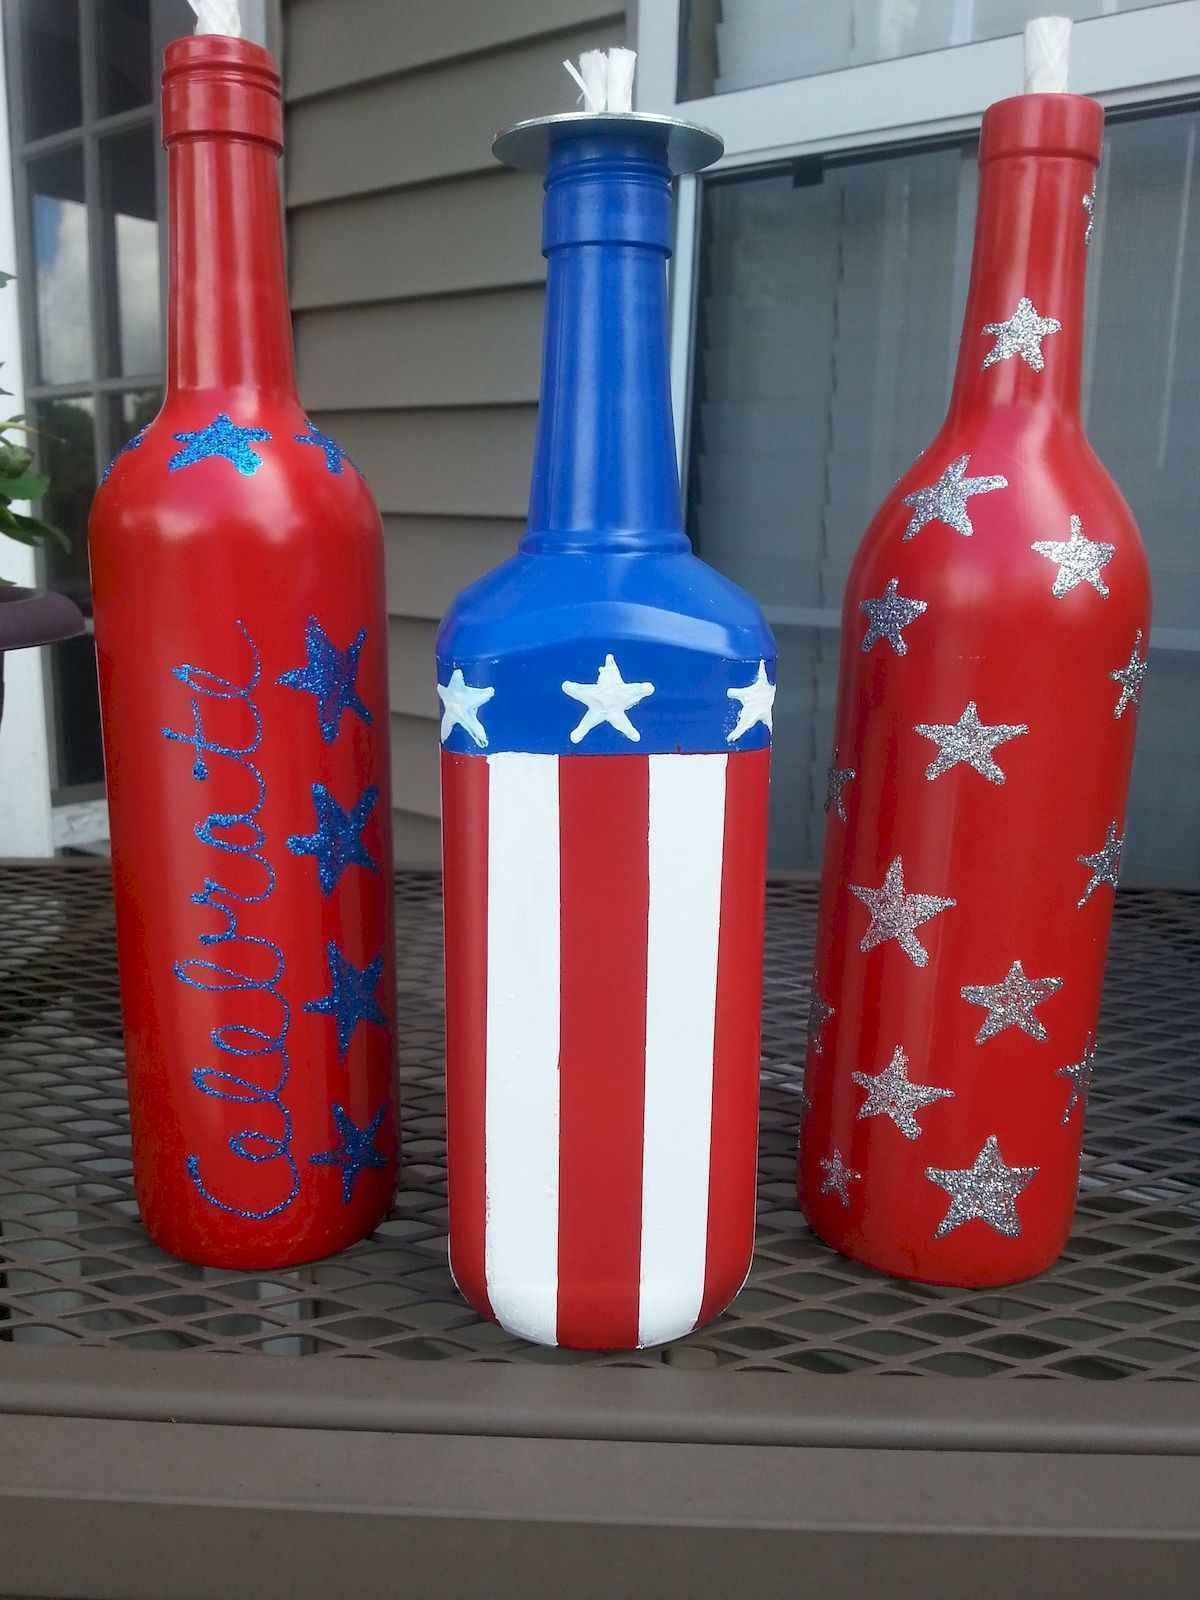 50 Easy Craft Ideas For Kids In 2020 Painted Wine Bottles Wine Bottle Crafts Glass Bottle Crafts